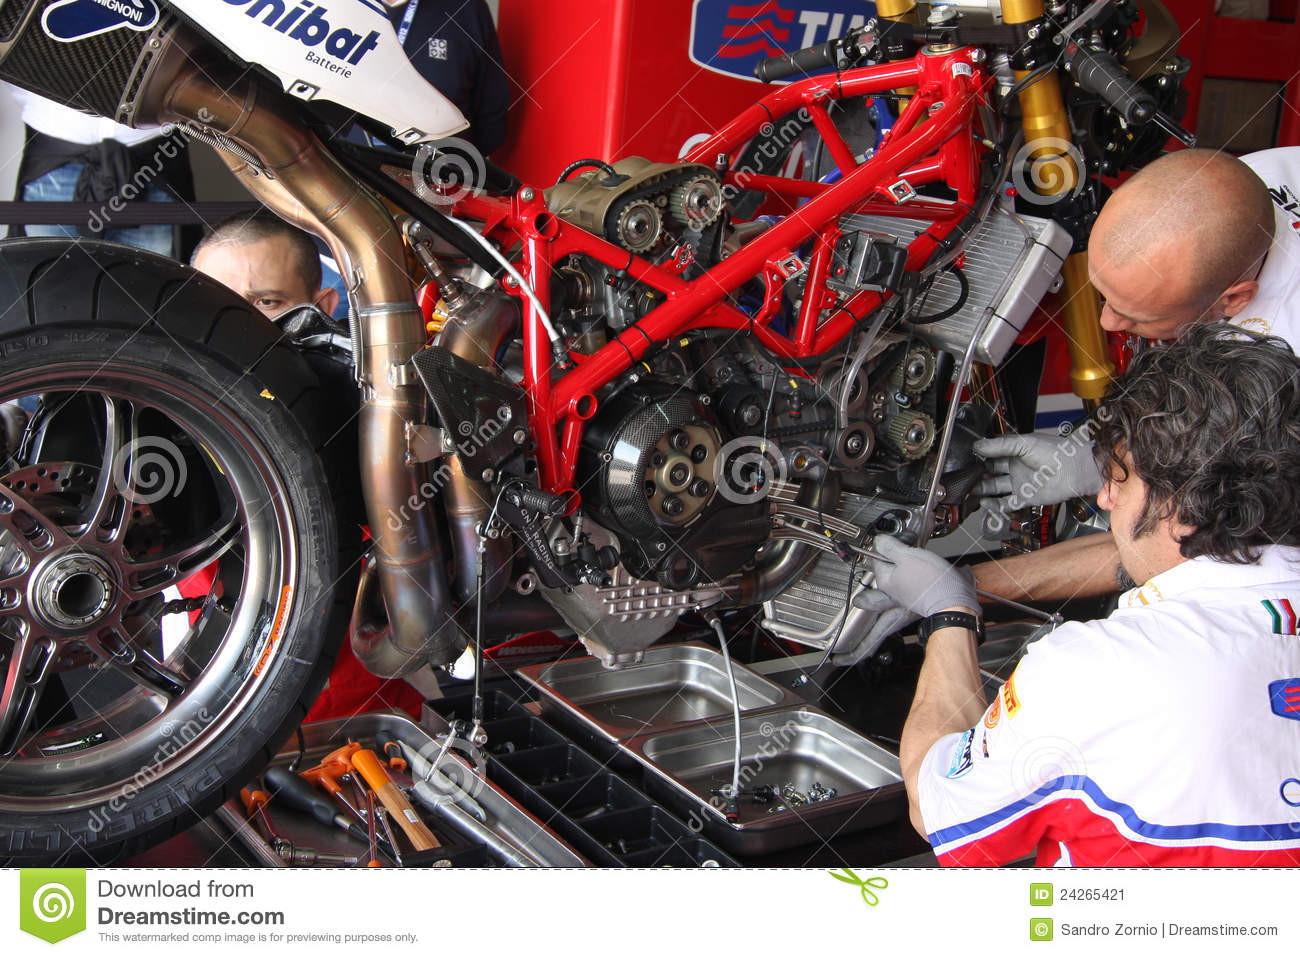 Ducati 1098R - Althea Racing maintenance